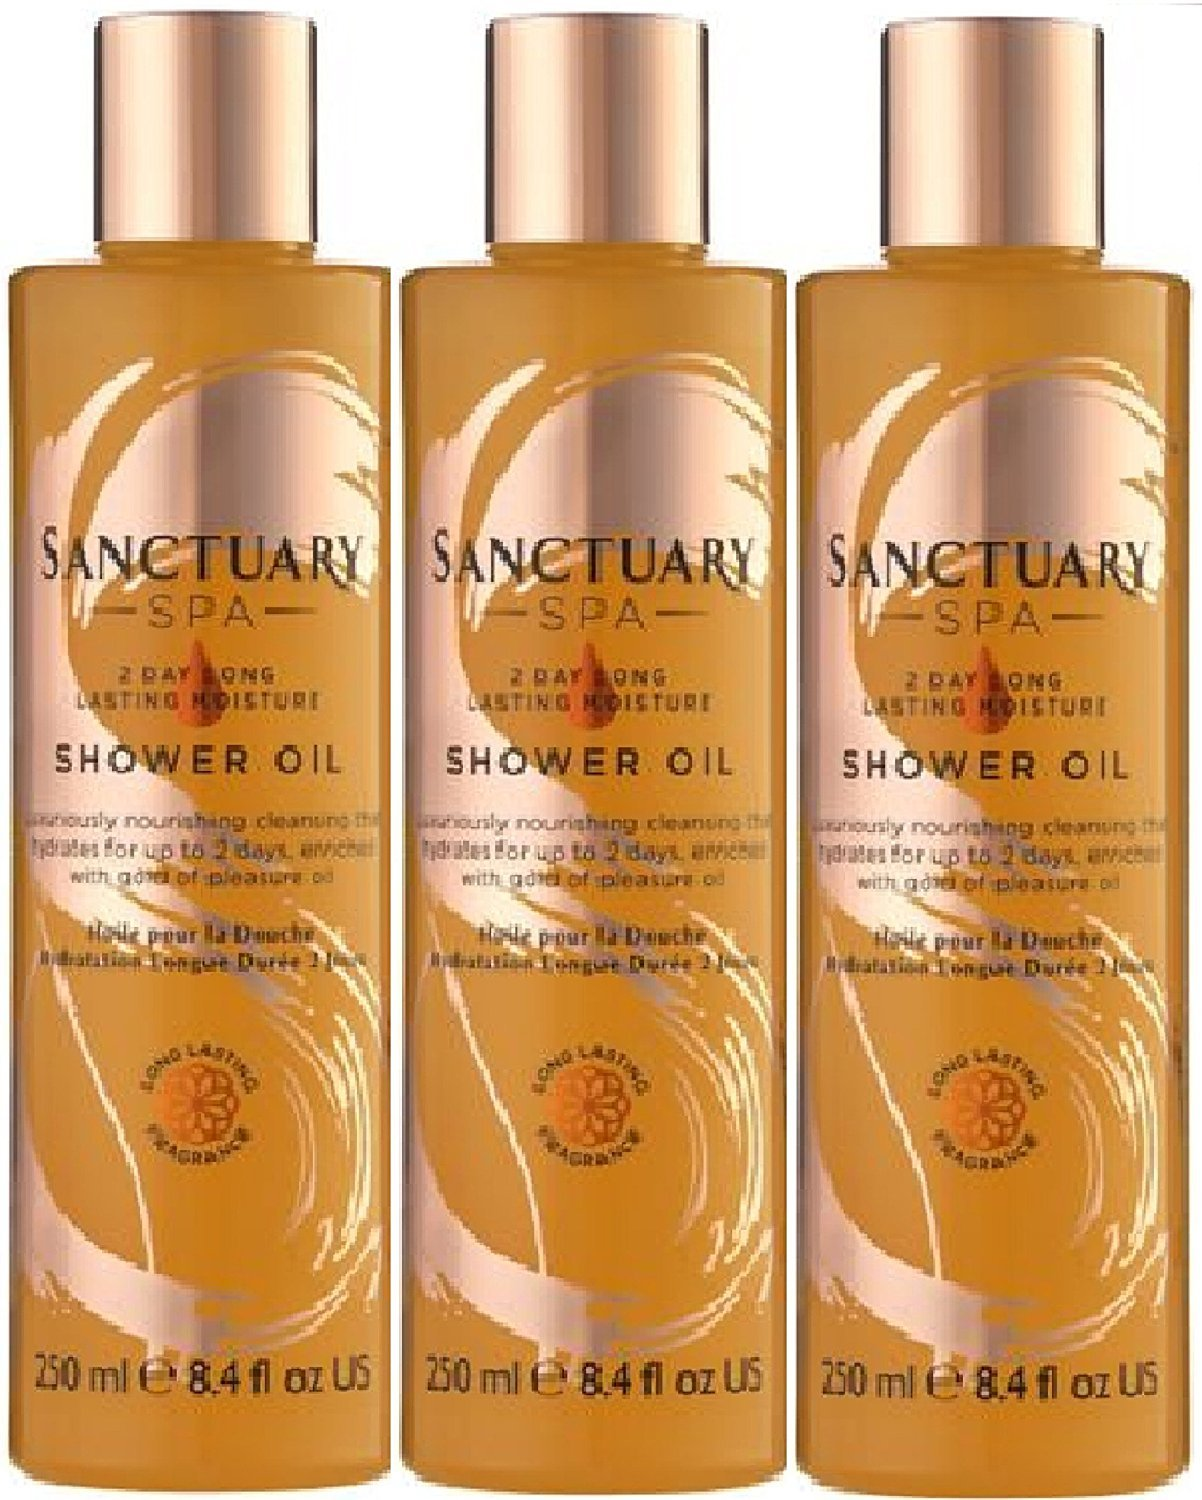 (3 PACK) Sanctuary Spa 2 Day Moisture Shower Oil x 250ml